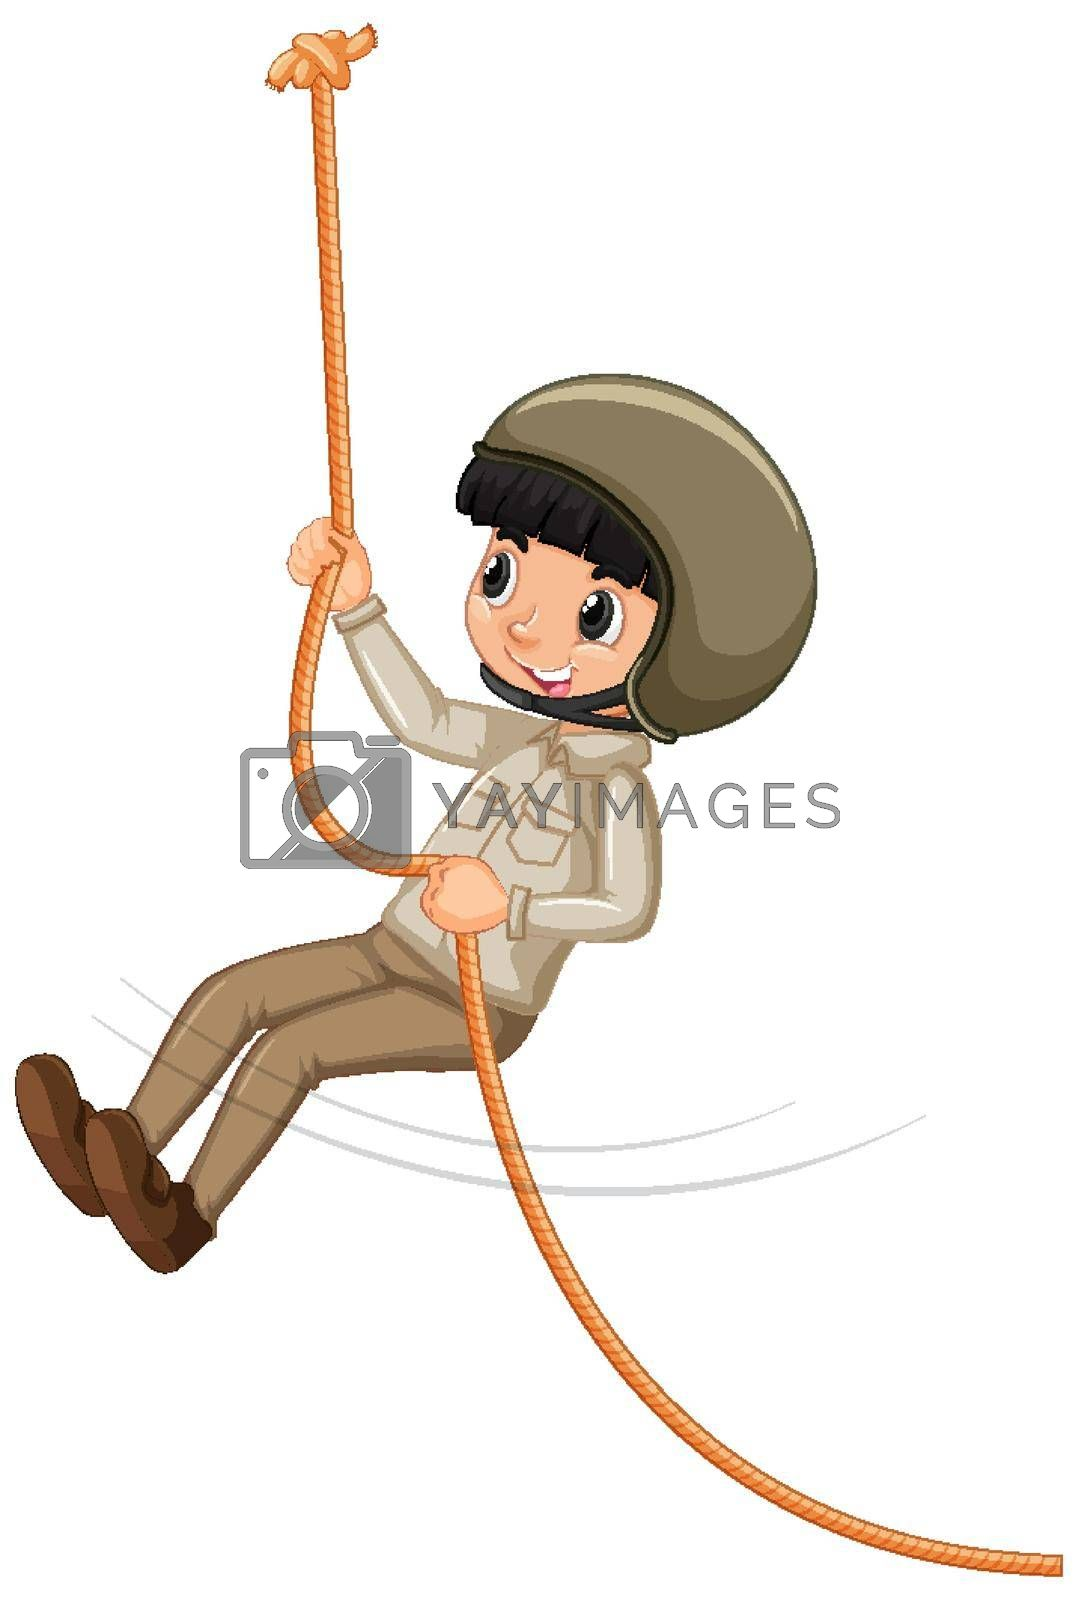 Boy in scout uniform climbing rope on white background illustration